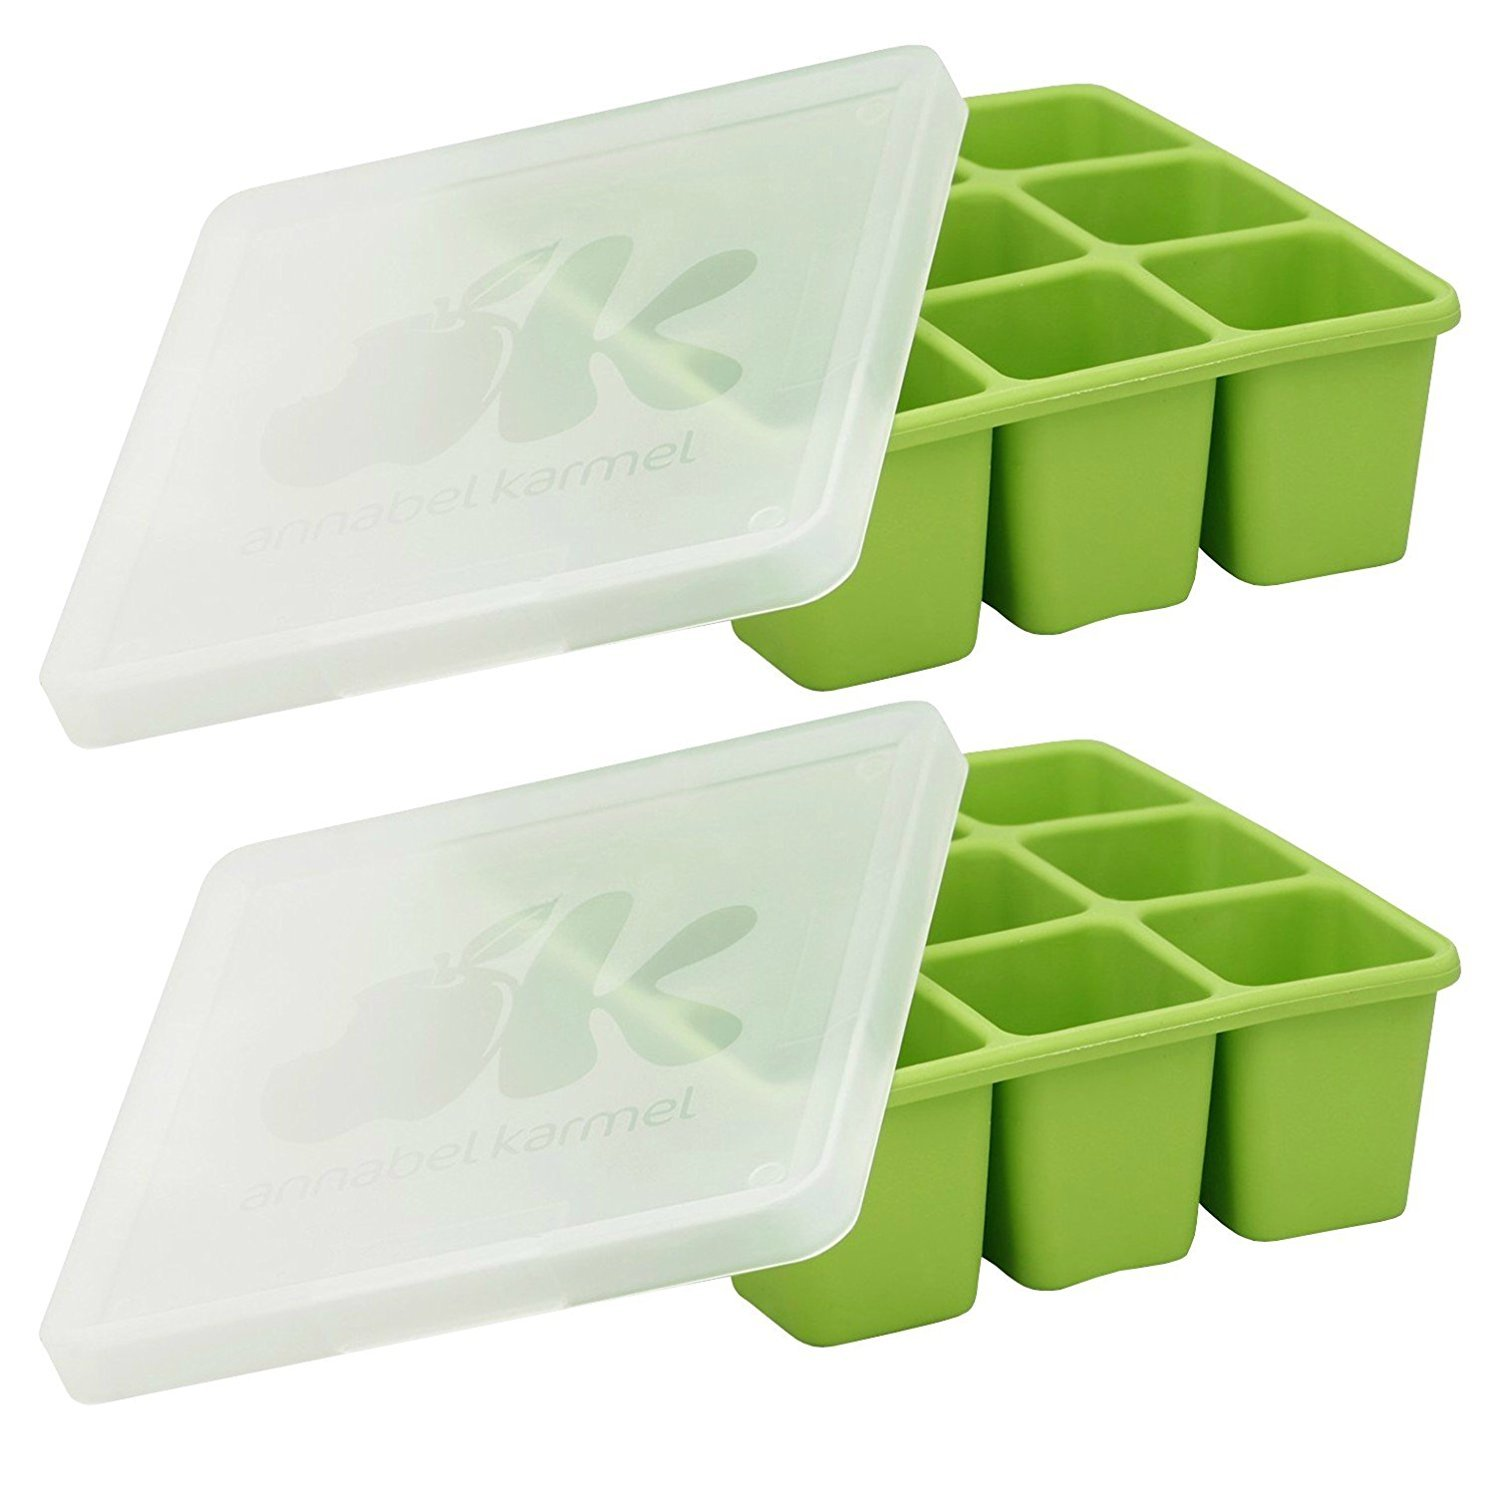 NUK Homemade Baby Food Flexible Freezer Tray and Lid Set (Pack of 2)